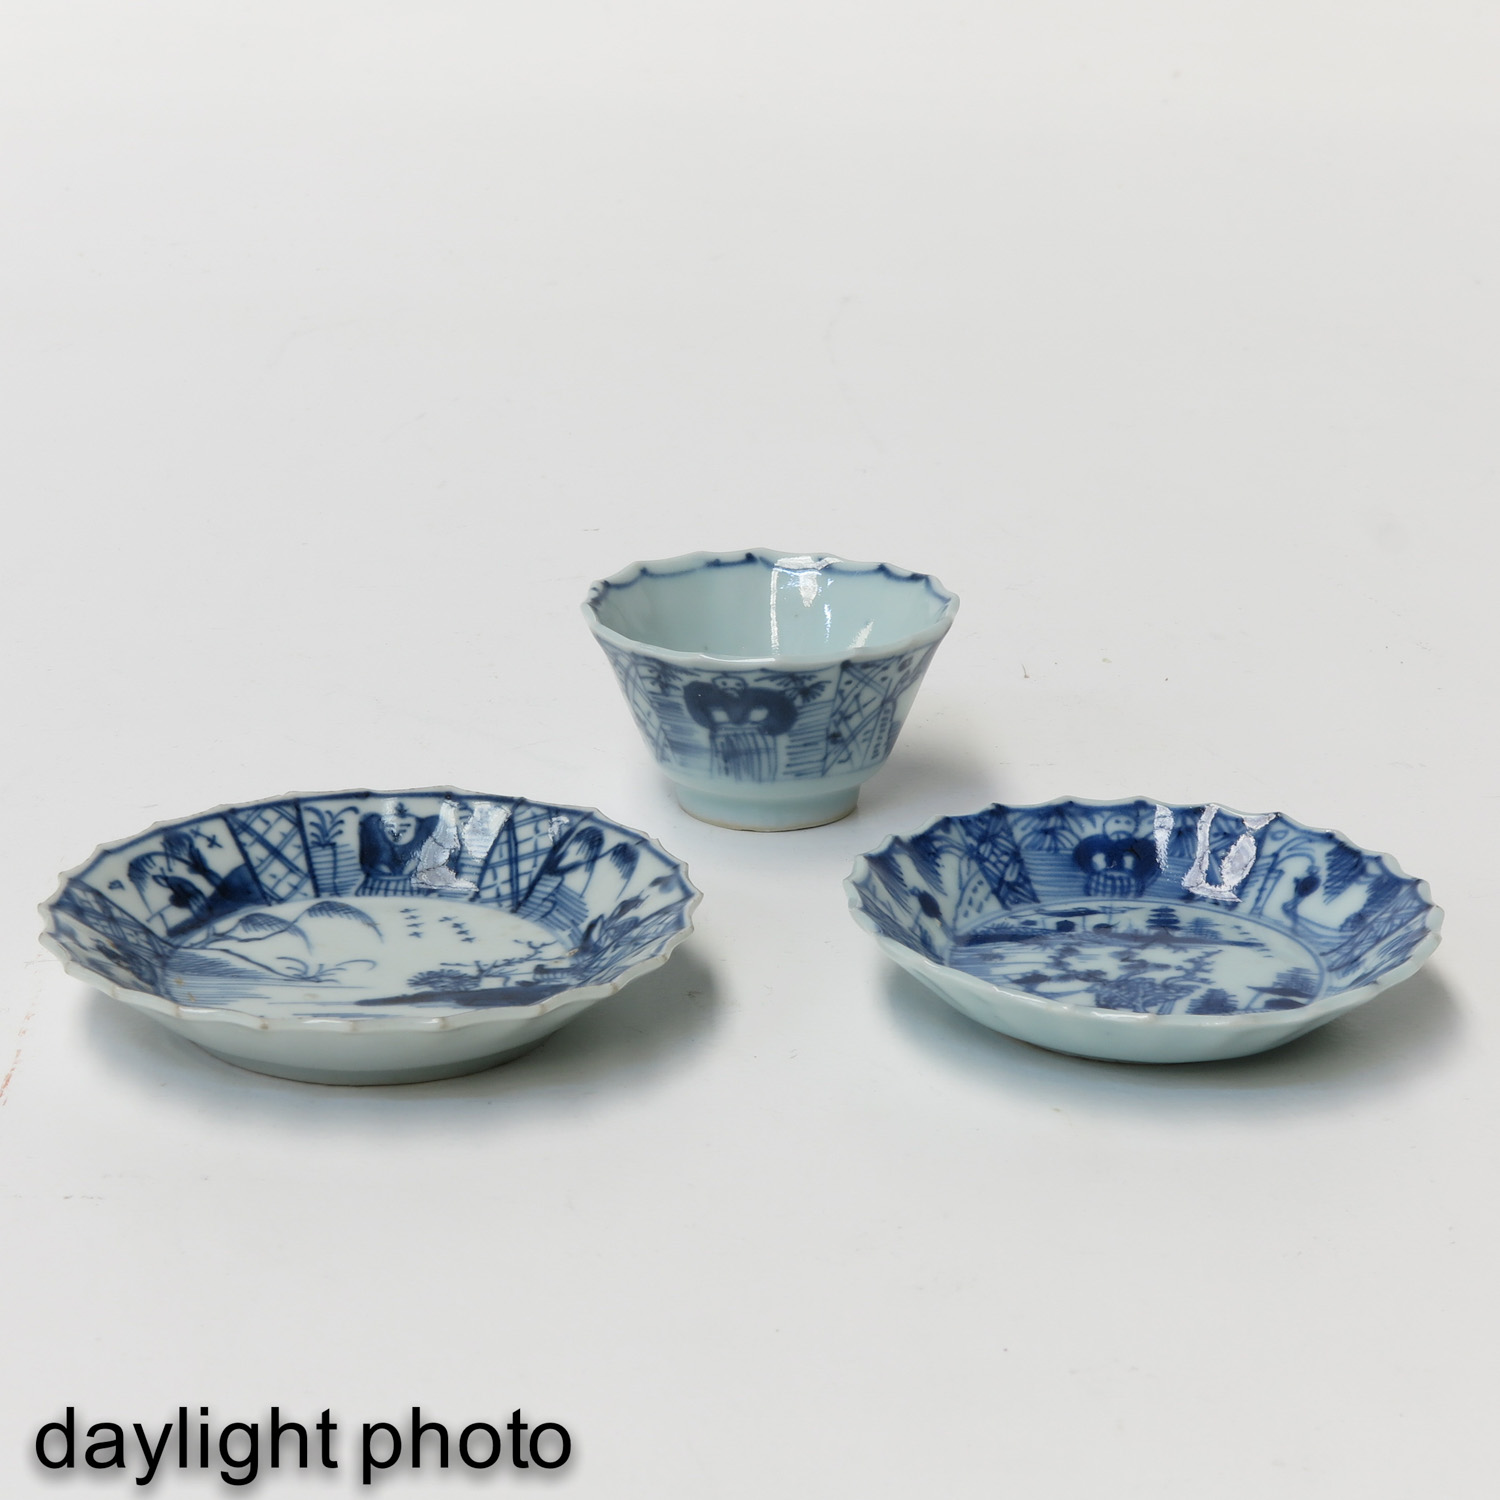 A Collection of 5 Cups and Saucers - Image 9 of 10